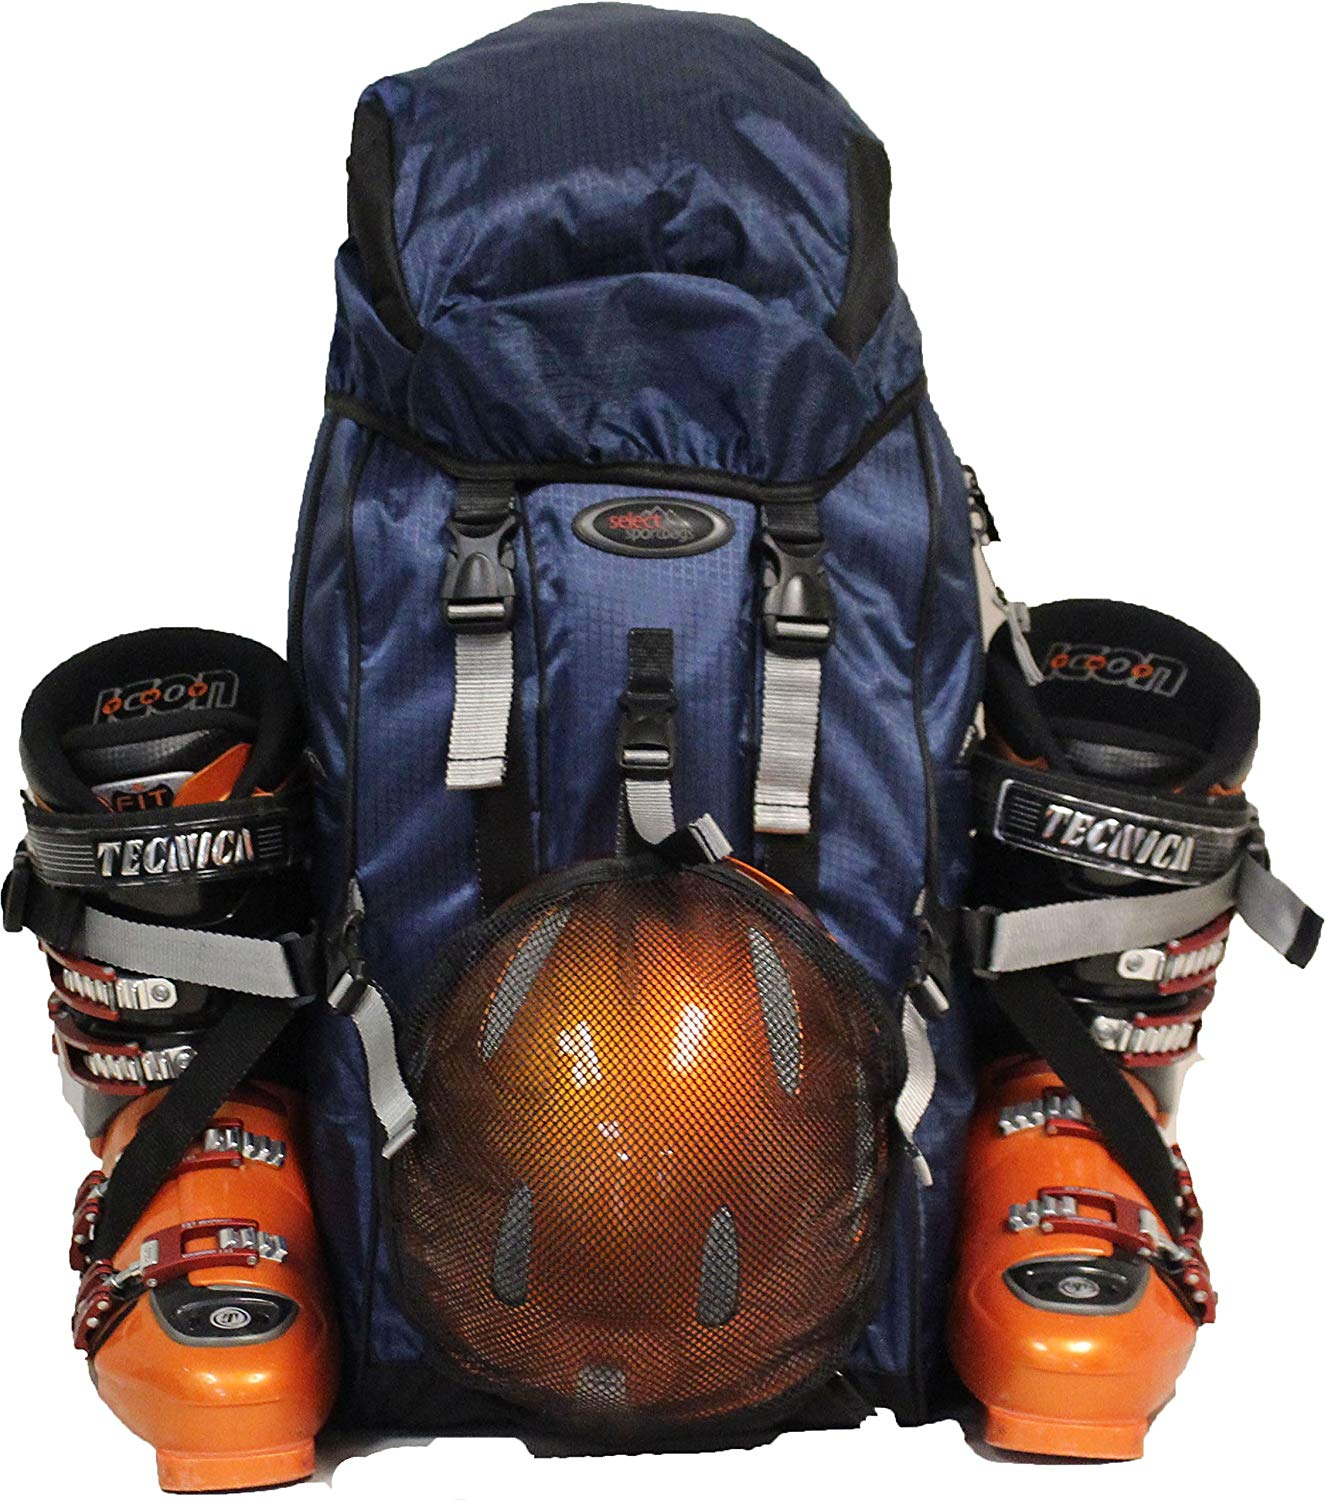 SELECT SPORTBAGS TEAM PACK SKI BOOT BAG